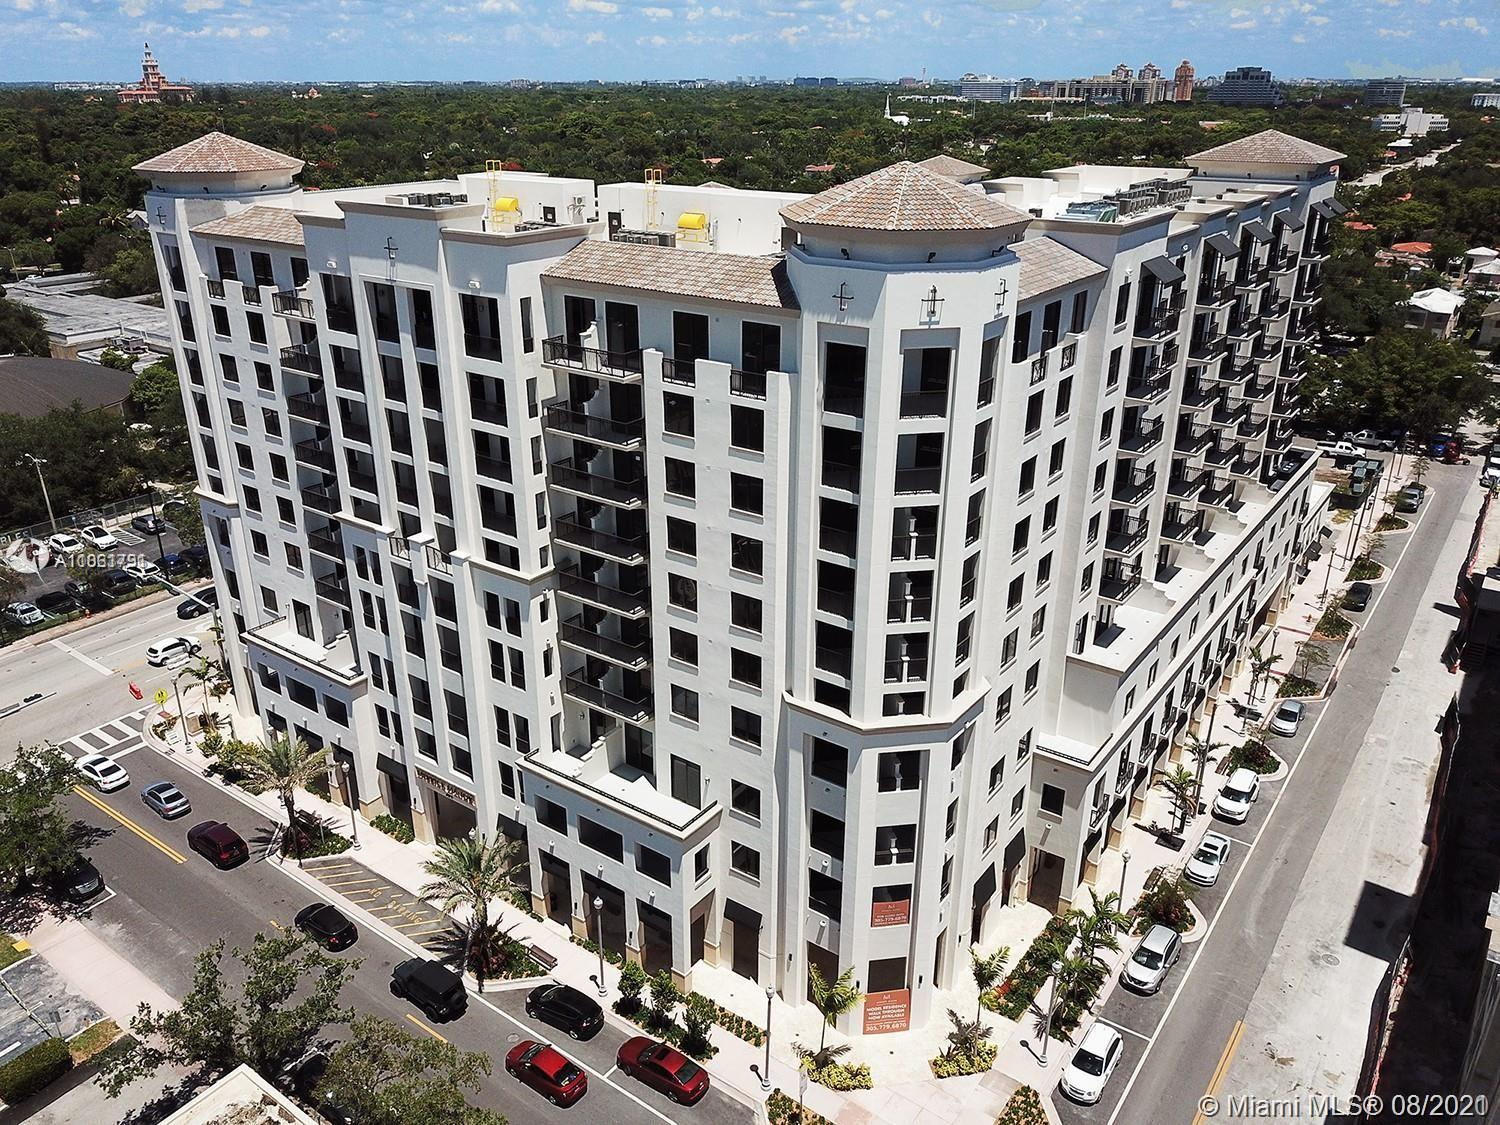 BRAND NEW three-bedroom developer unit with large enclosed terrace in Coral Gables' chic Shops of Merrick Park neighborhood! Residence features fine, contemporary finishes: Italkraft Cabinets and closets, quartz countertops, Bosh appliances, Nest Thermostat, keyless locks and high ceilings. Impeccable, resort-style amenities and services, saline-heated pool, summer kitchen, upscale fitness center, 24HR concierge and security, valet services and more. Pet-friendly building. One parking. Sales Gallery located on-site.